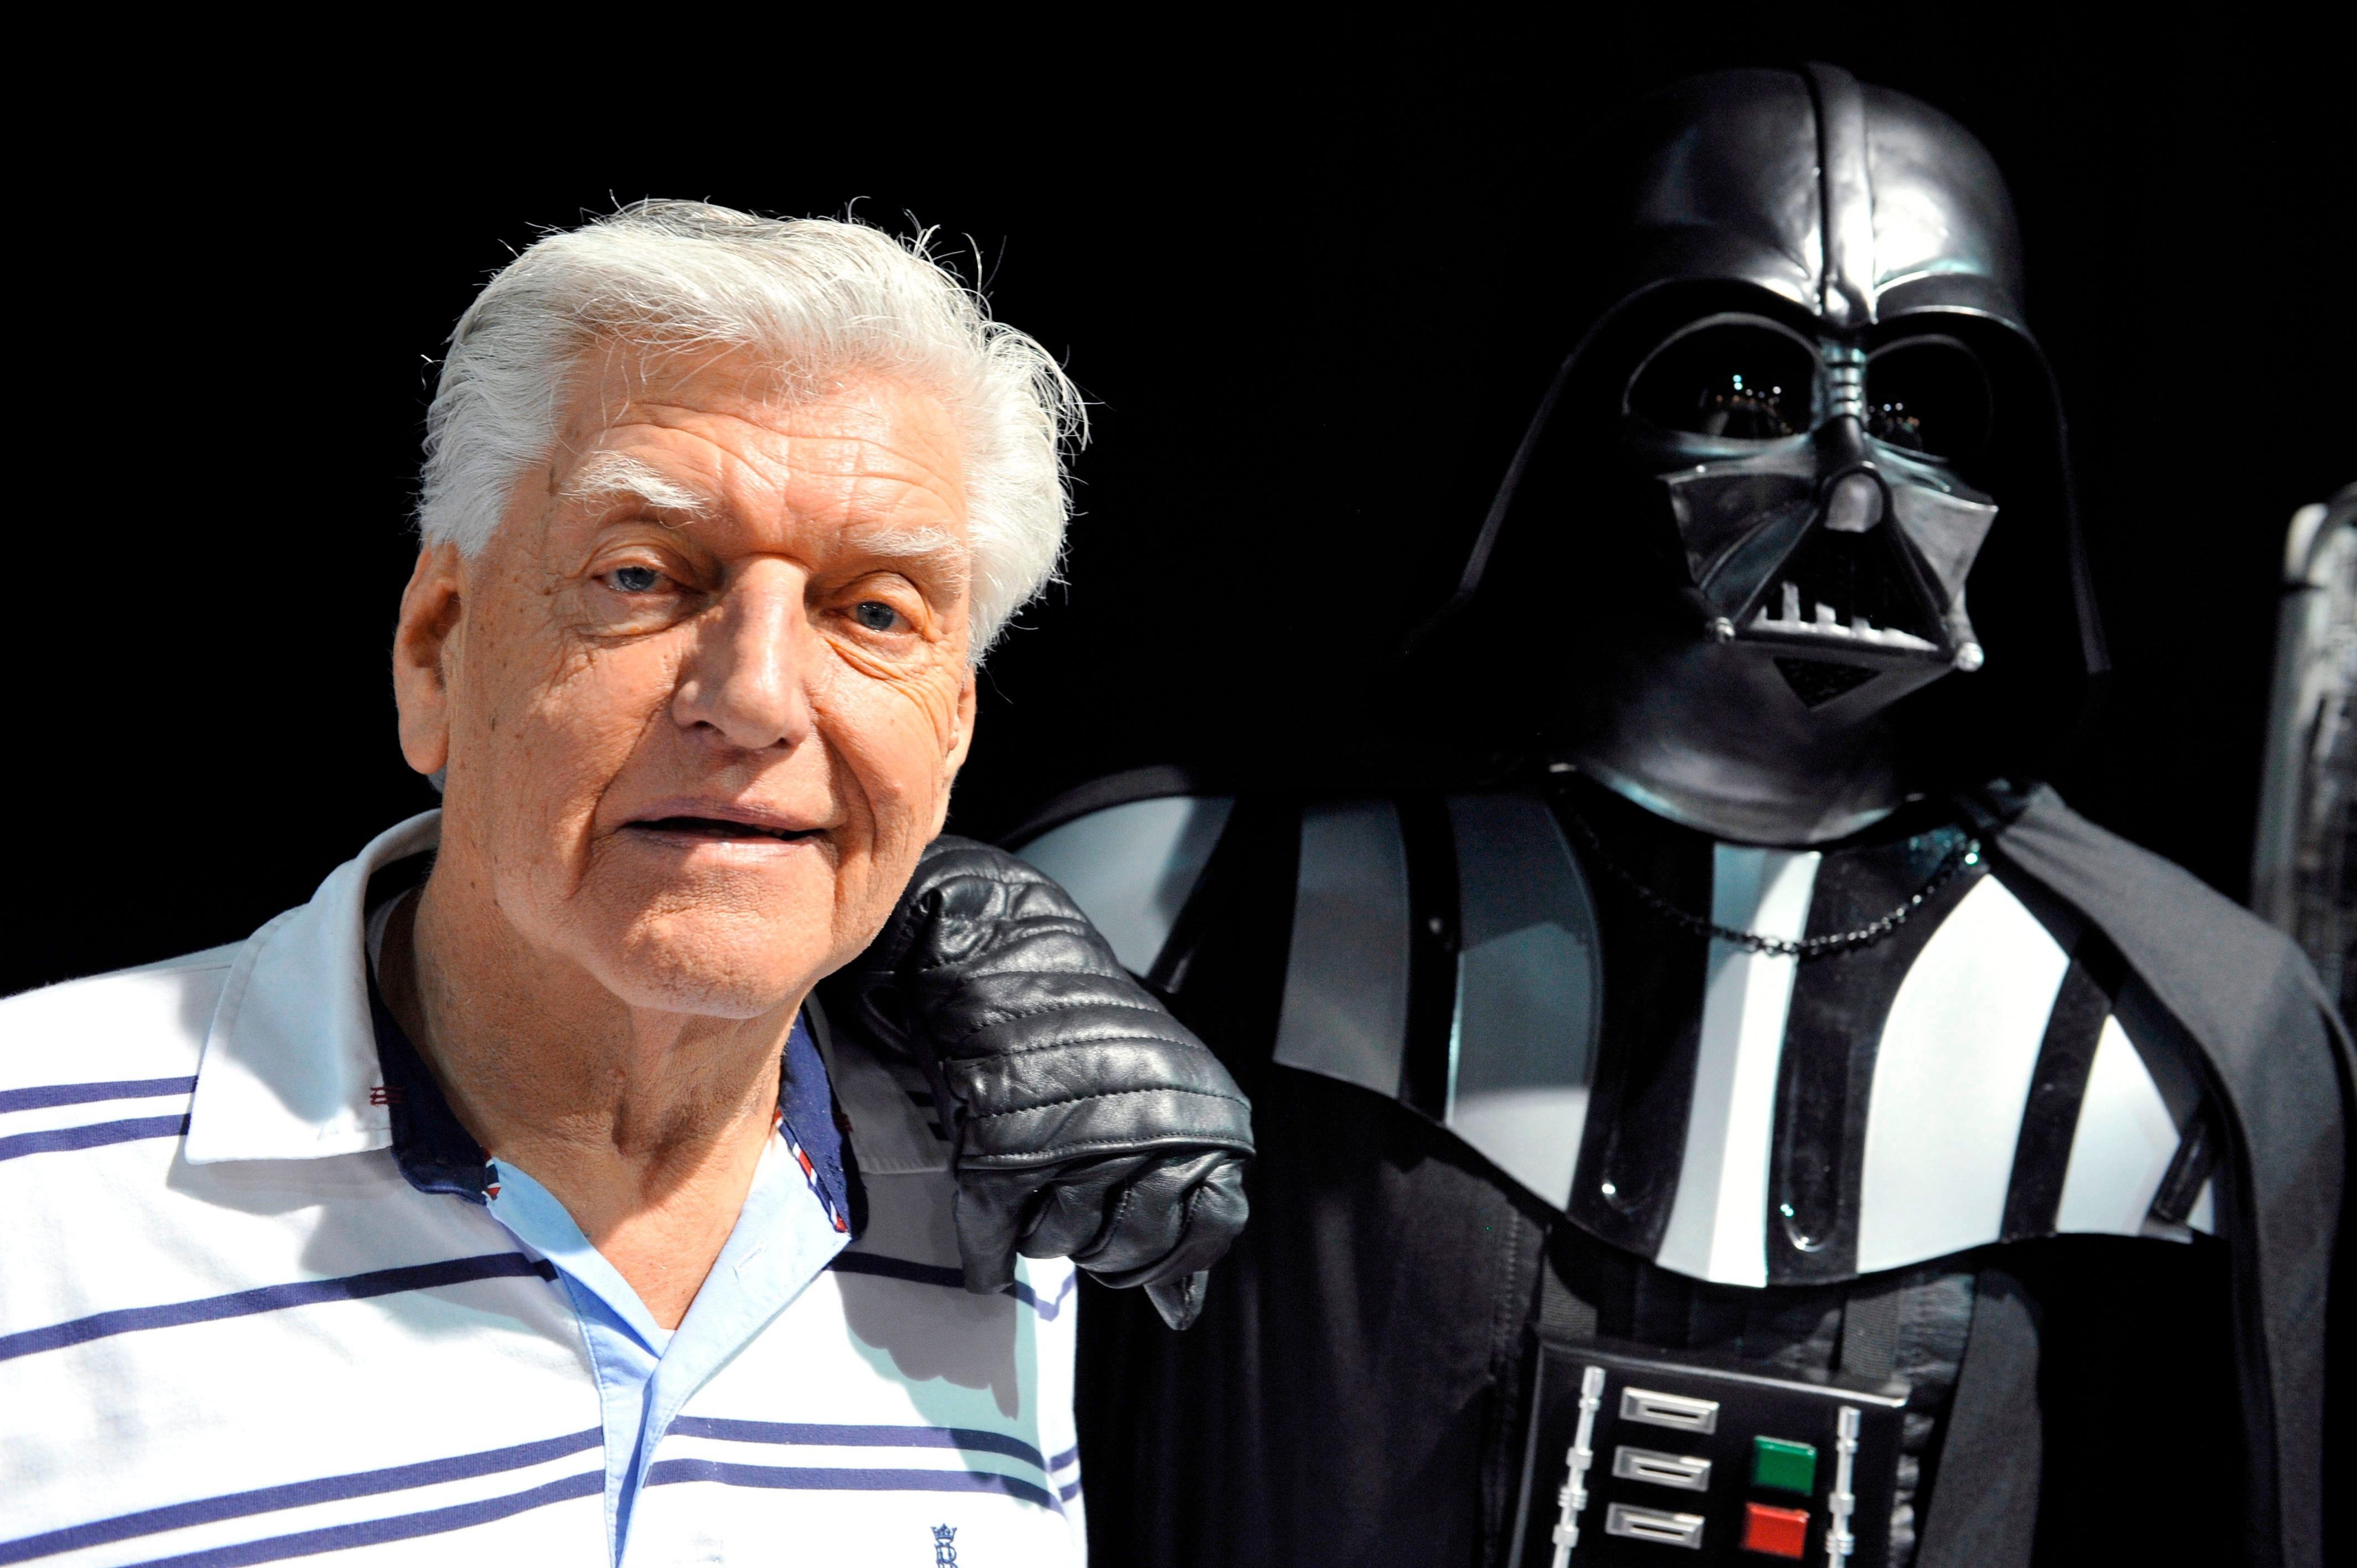 George Lucas, Mark Hamill pay tribute to 'Star Wars' actor David Prowse, the original Darth Vader